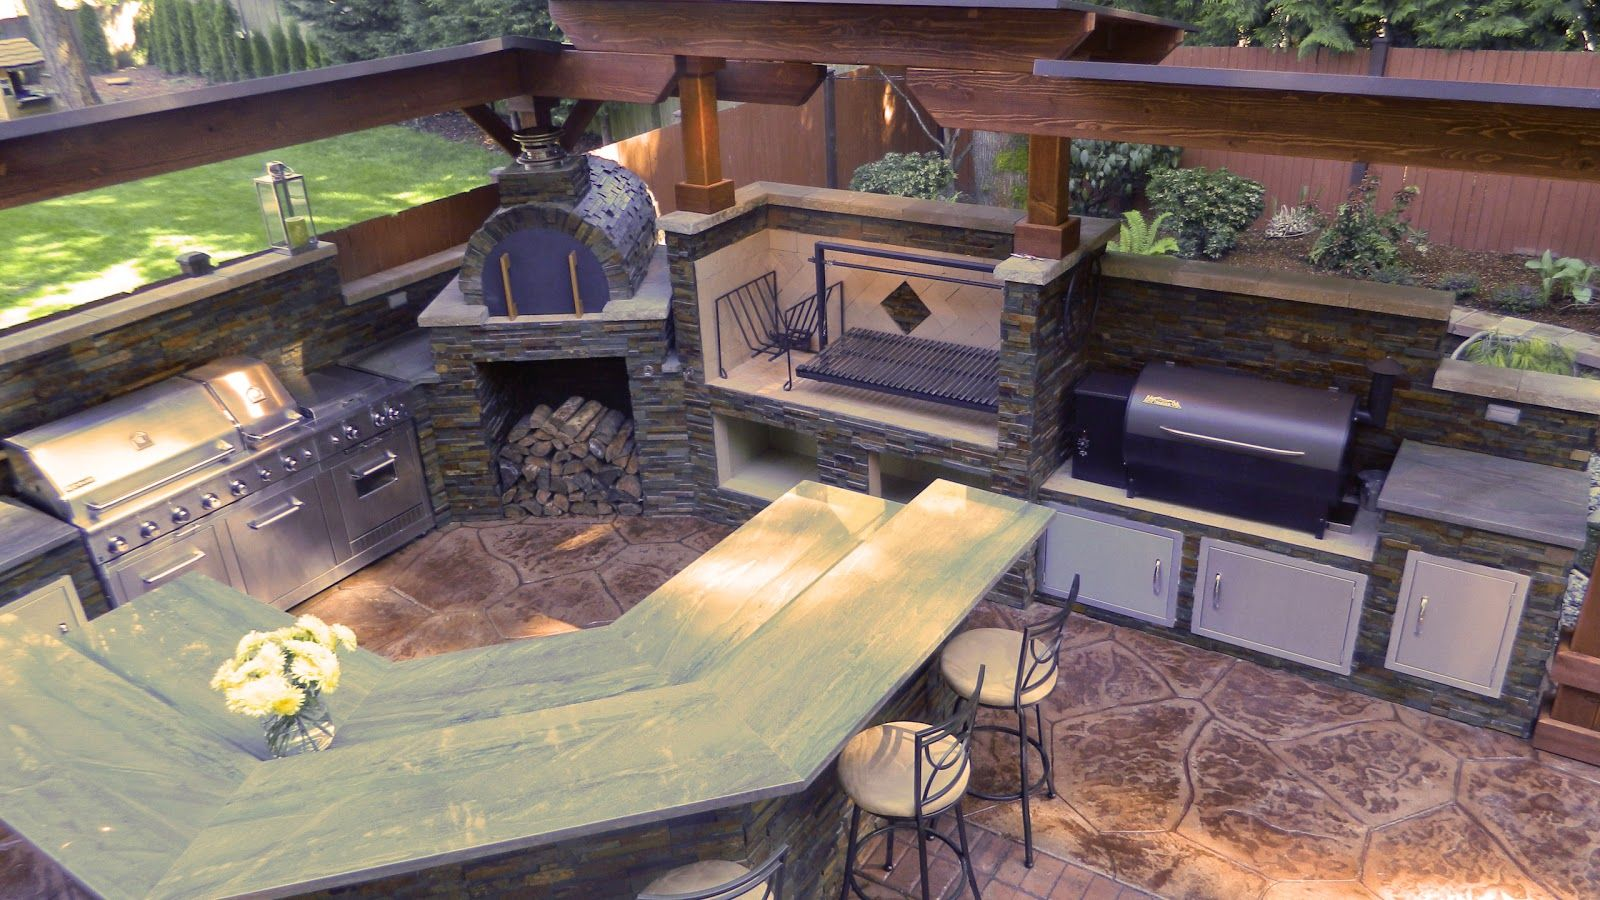 Kitchens With Brick Pizza Ovens Outdoor Kitchen With Argentinian Grill Brickwood Pizza Oven And Brick Pizza Oven Outdoor Brick Pizza Oven Pizza Oven Outdoor